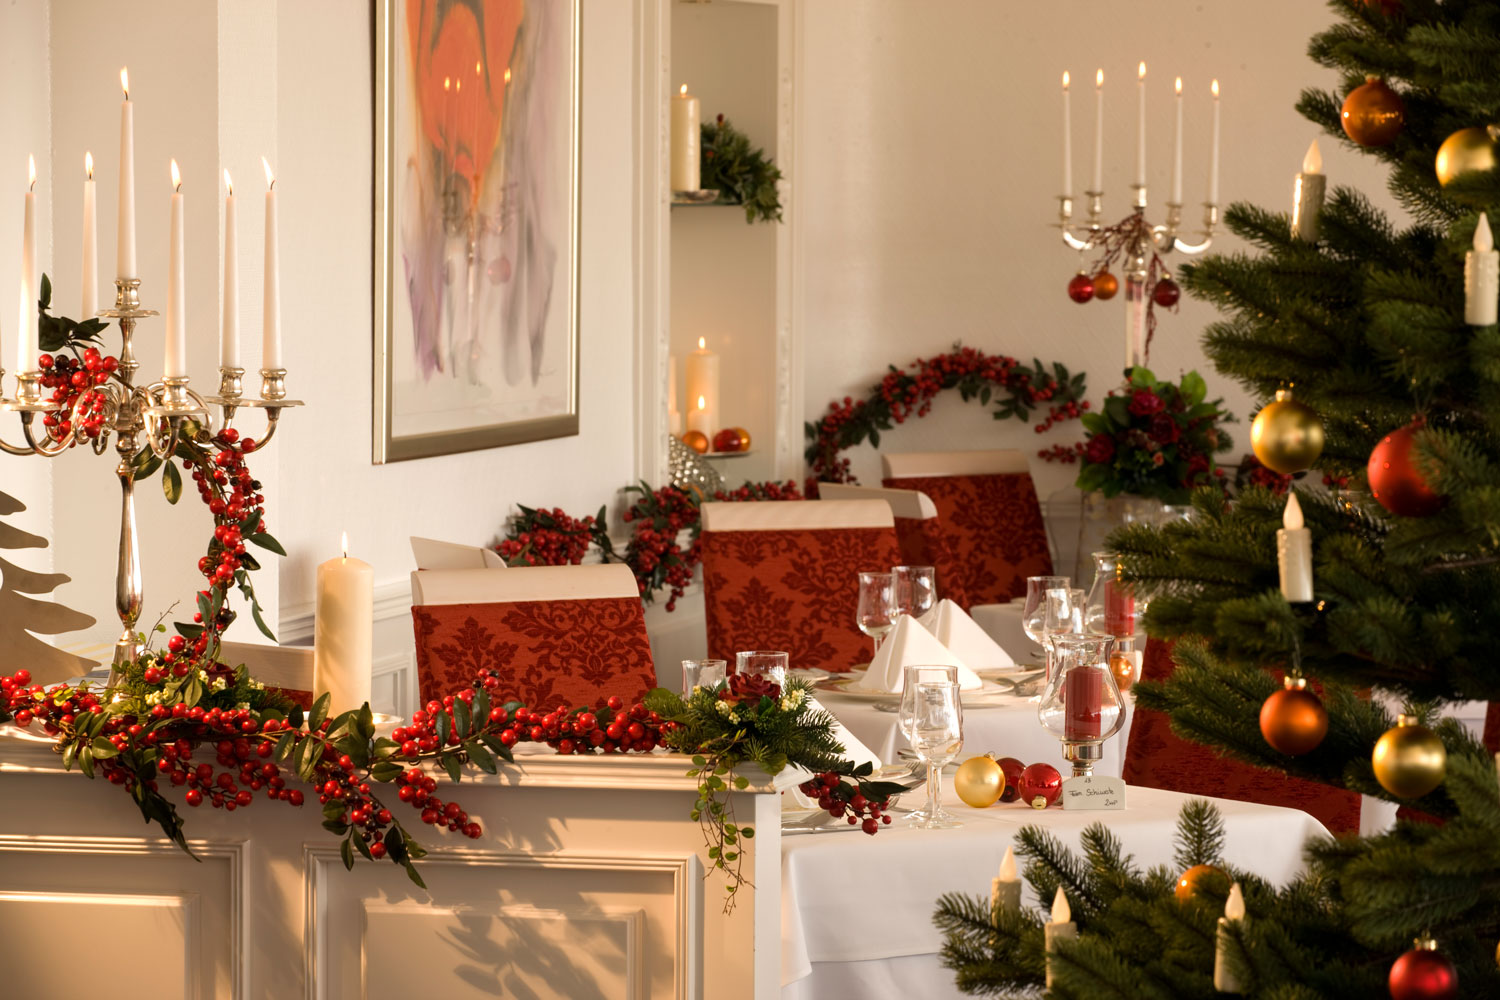 Weihnachten Archives - Wellness-Hotels & Resorts - Blog